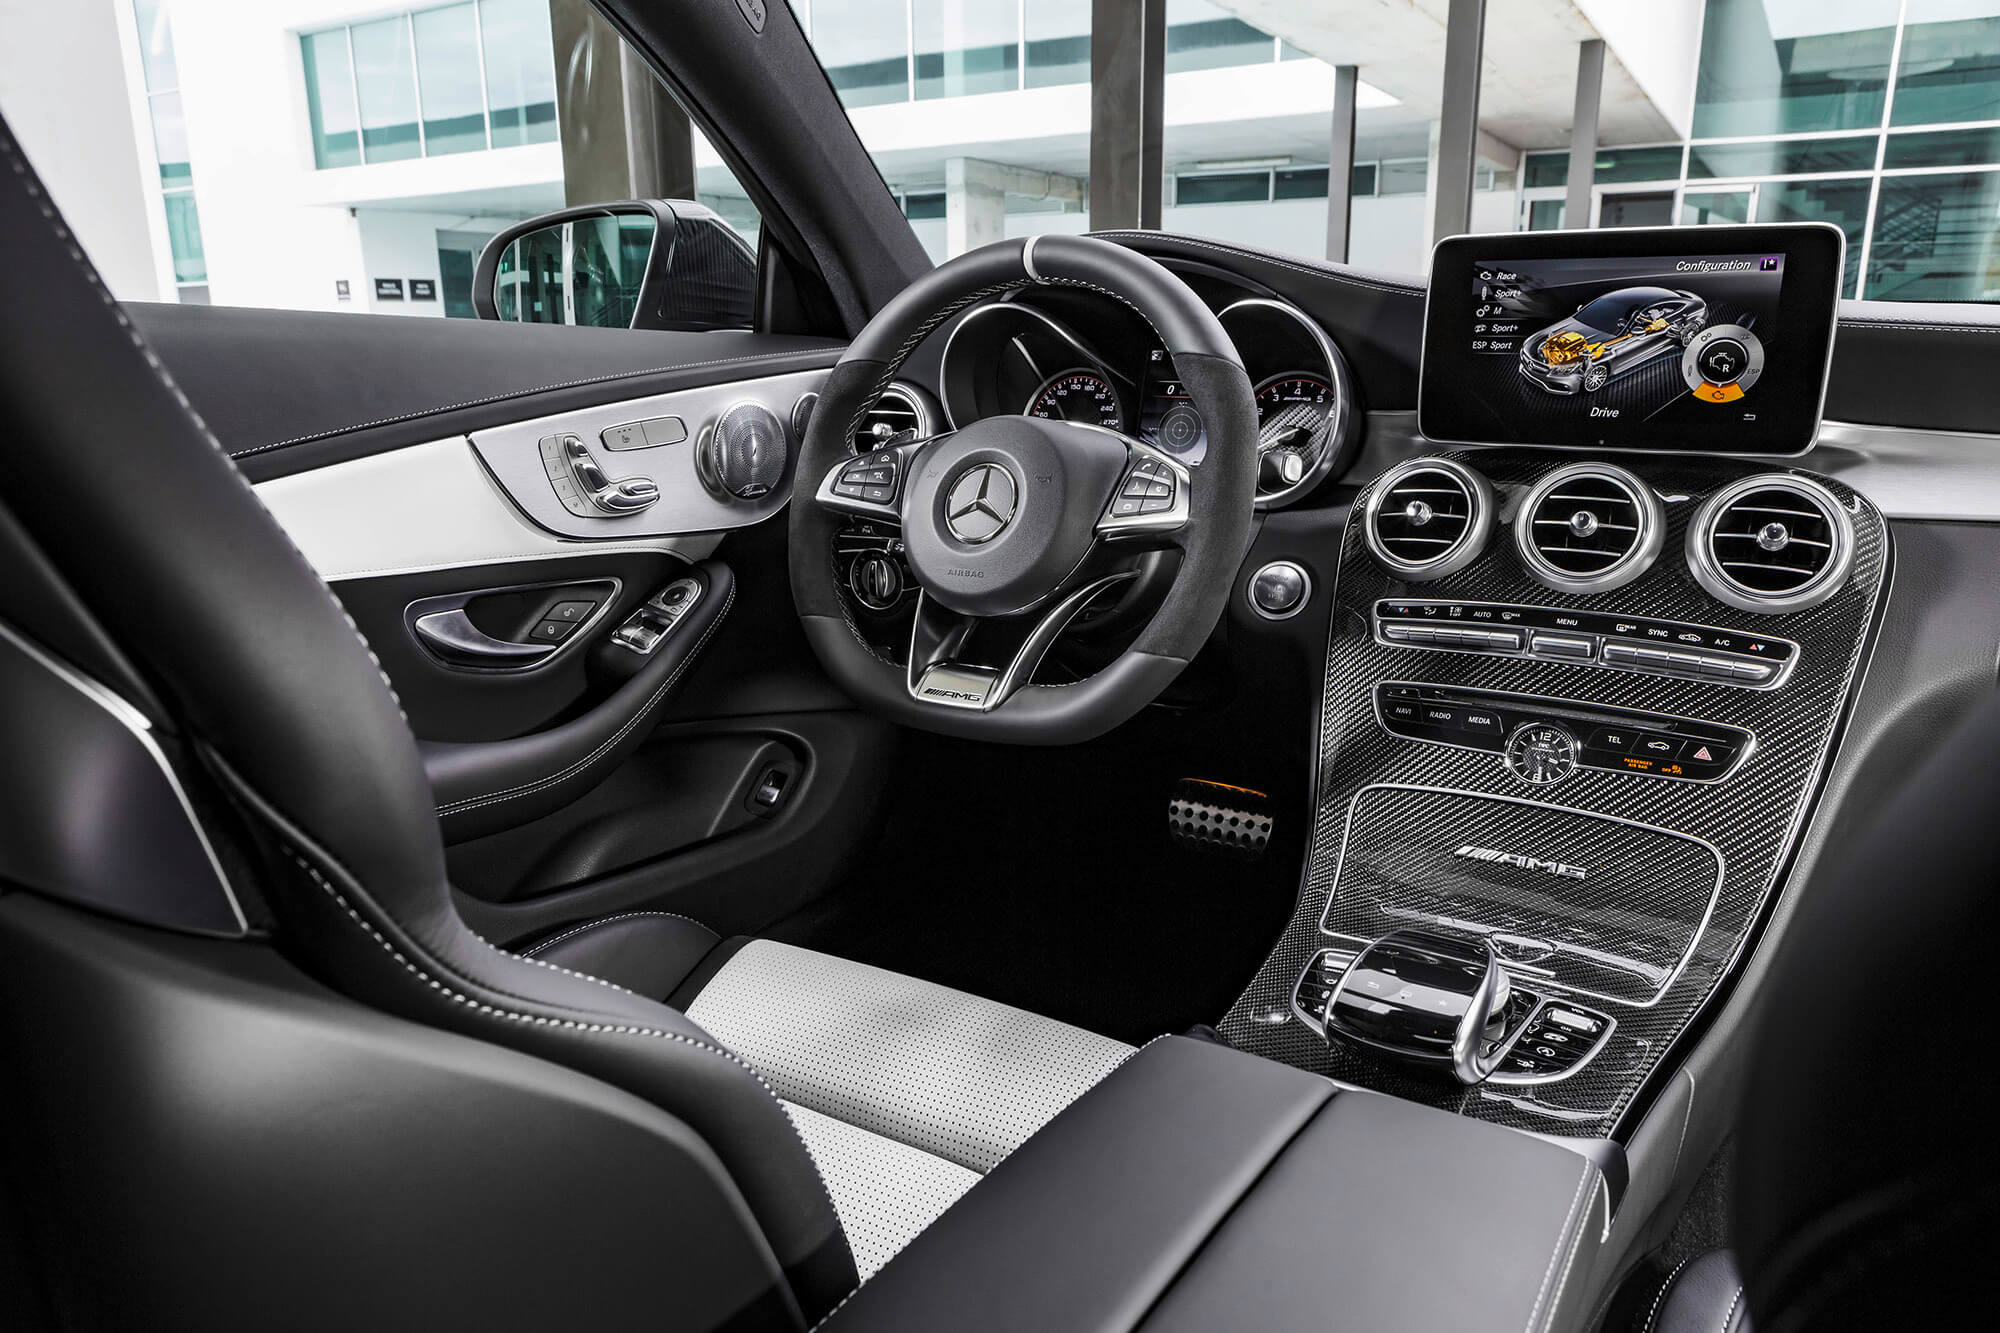 2018 mercedes amg c63 coupe makes its debut domino magazine. Black Bedroom Furniture Sets. Home Design Ideas